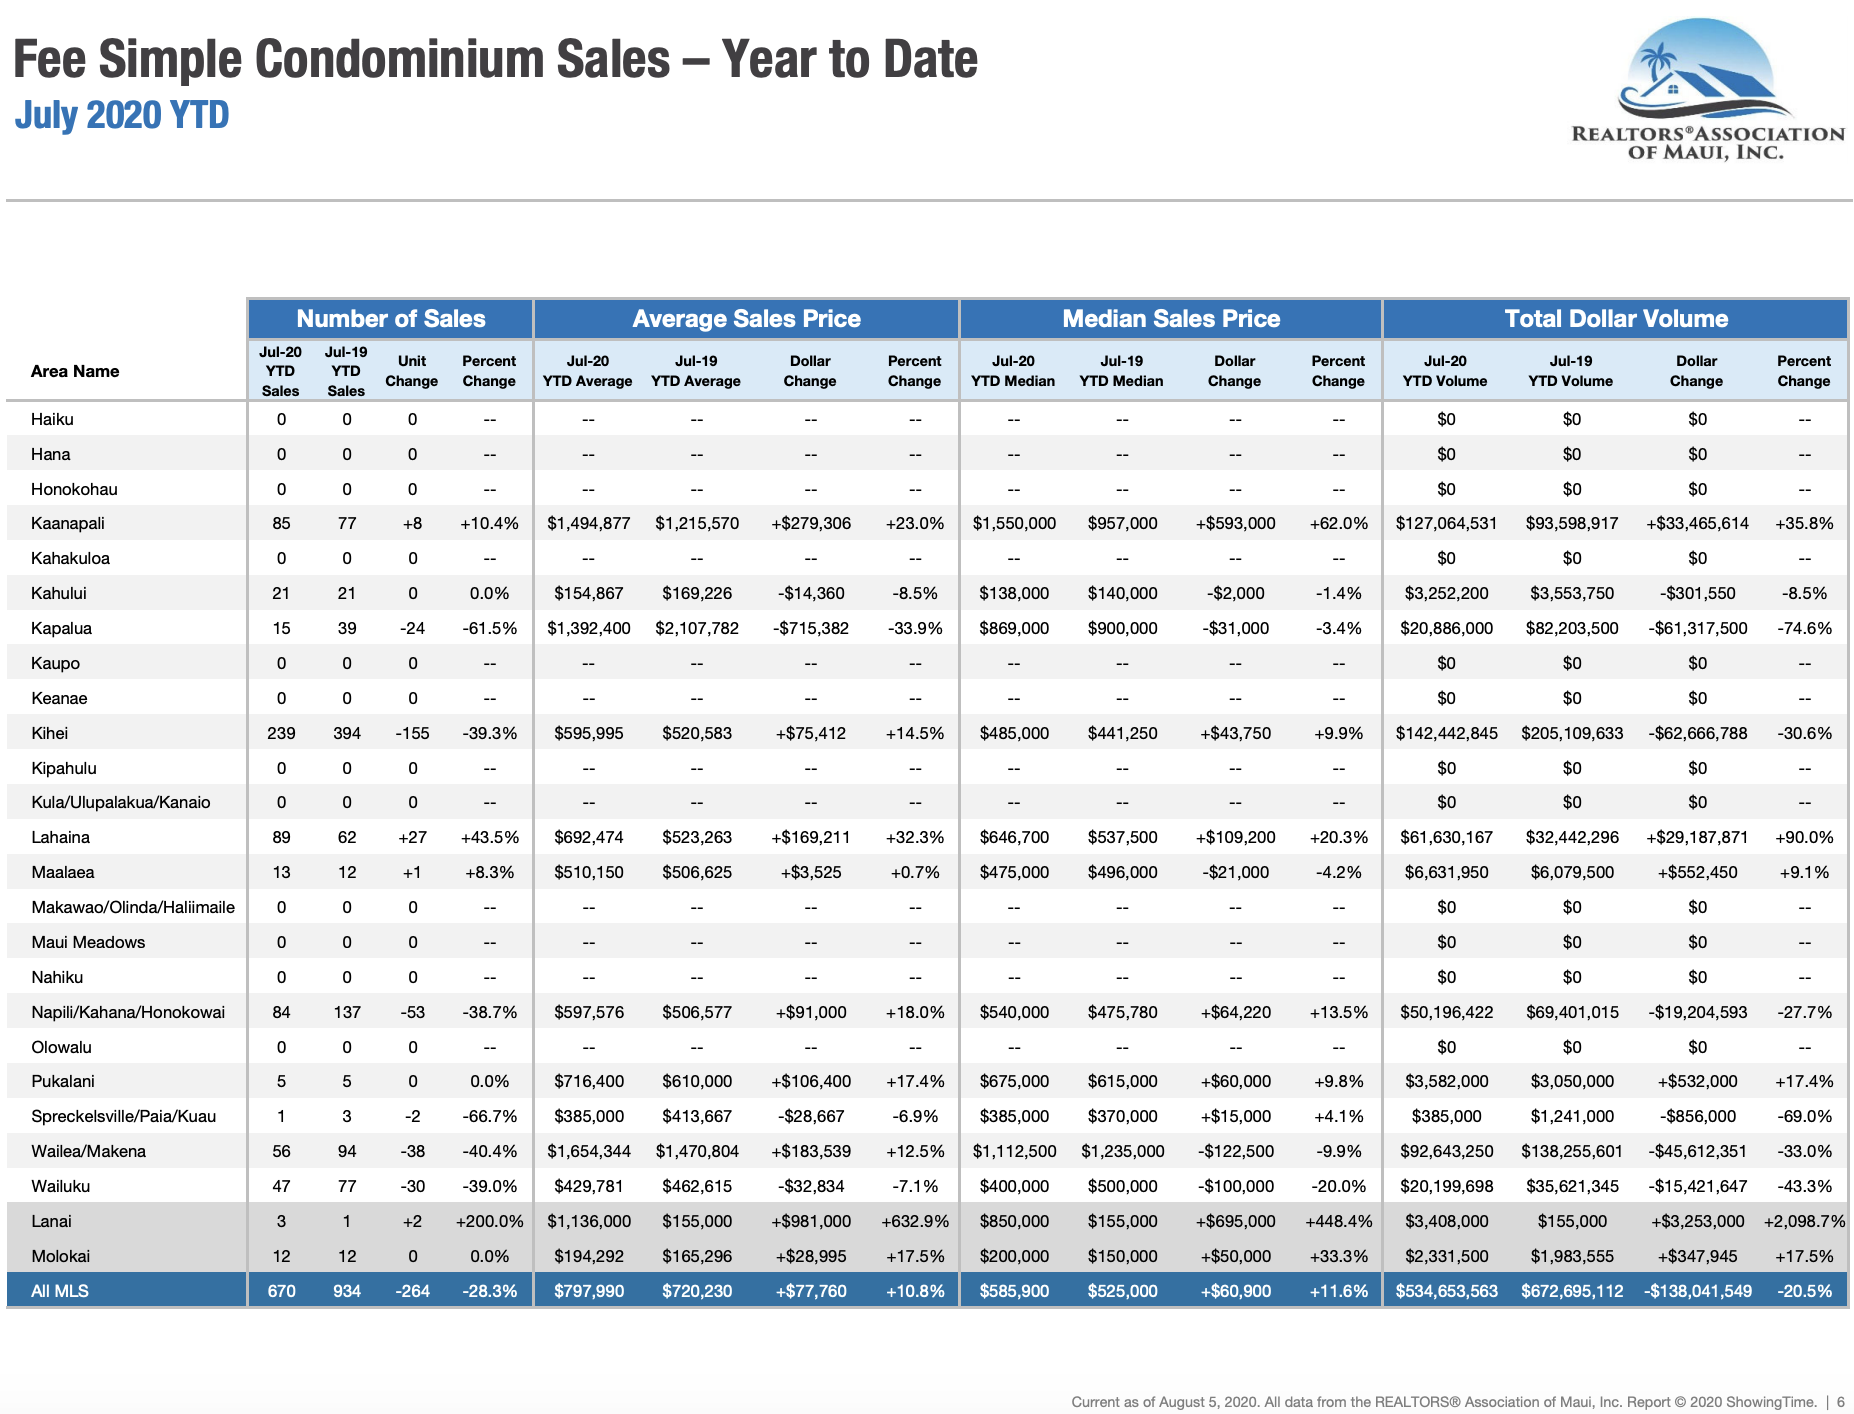 Maui sales activity for fee simple condominiums year to date through July 2019. Maui condo Realtor Jesse Coffey.